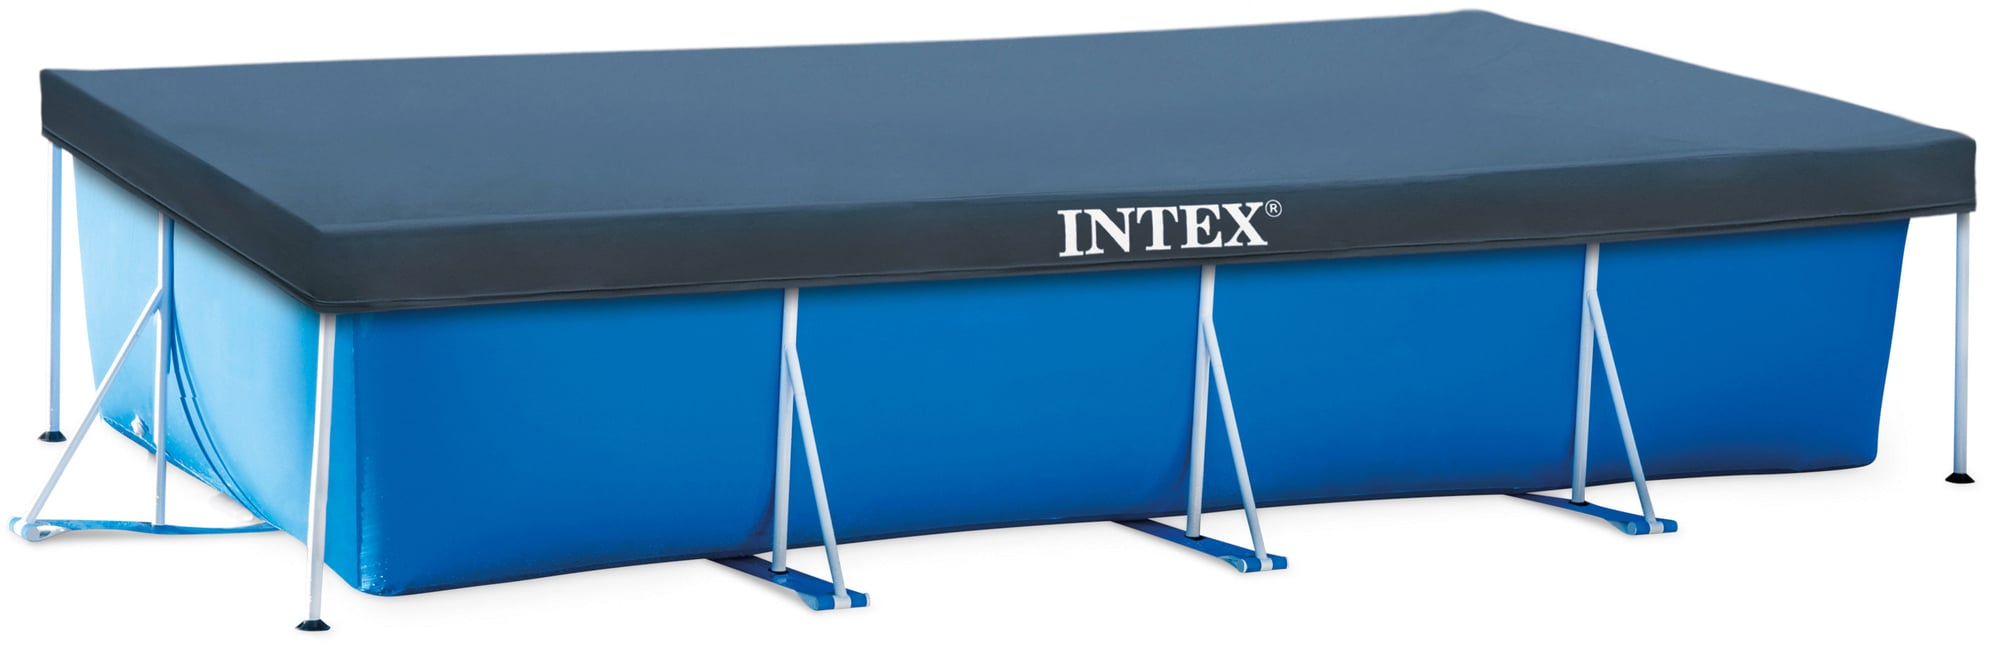 Abdeckplane Intex Pool Rechteckig Intex Abdeckplane Frame Pool Family